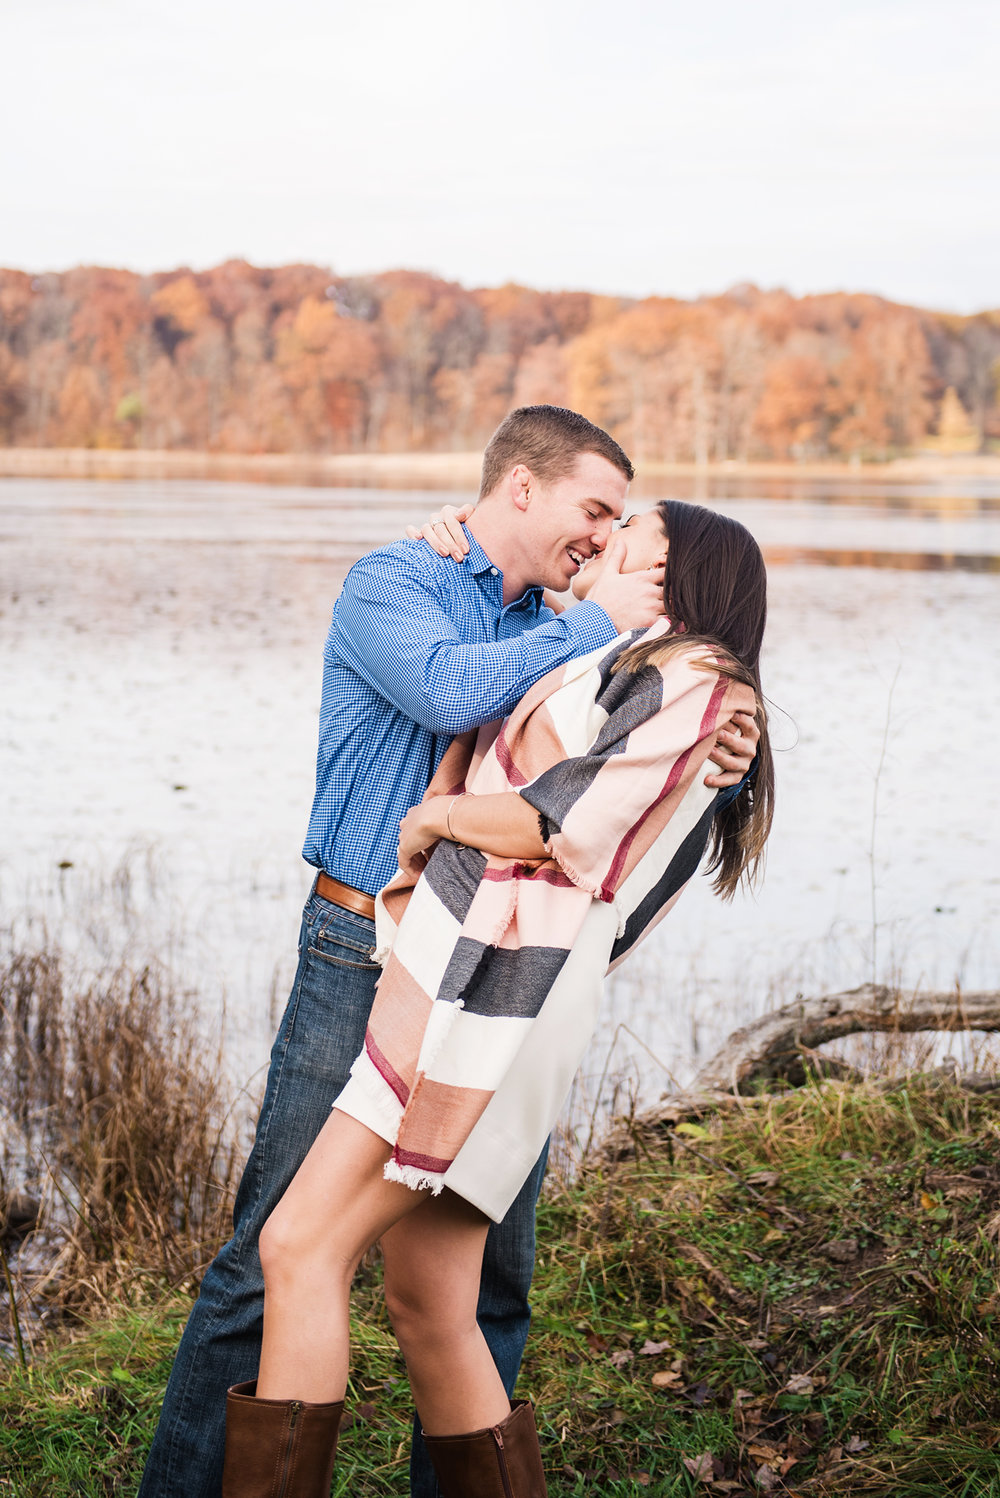 Mendon_Ponds_Park_Rochester_Engagement_Session_JILL_STUDIO_Rochester_NY_Photographer_DSC_0133.jpg